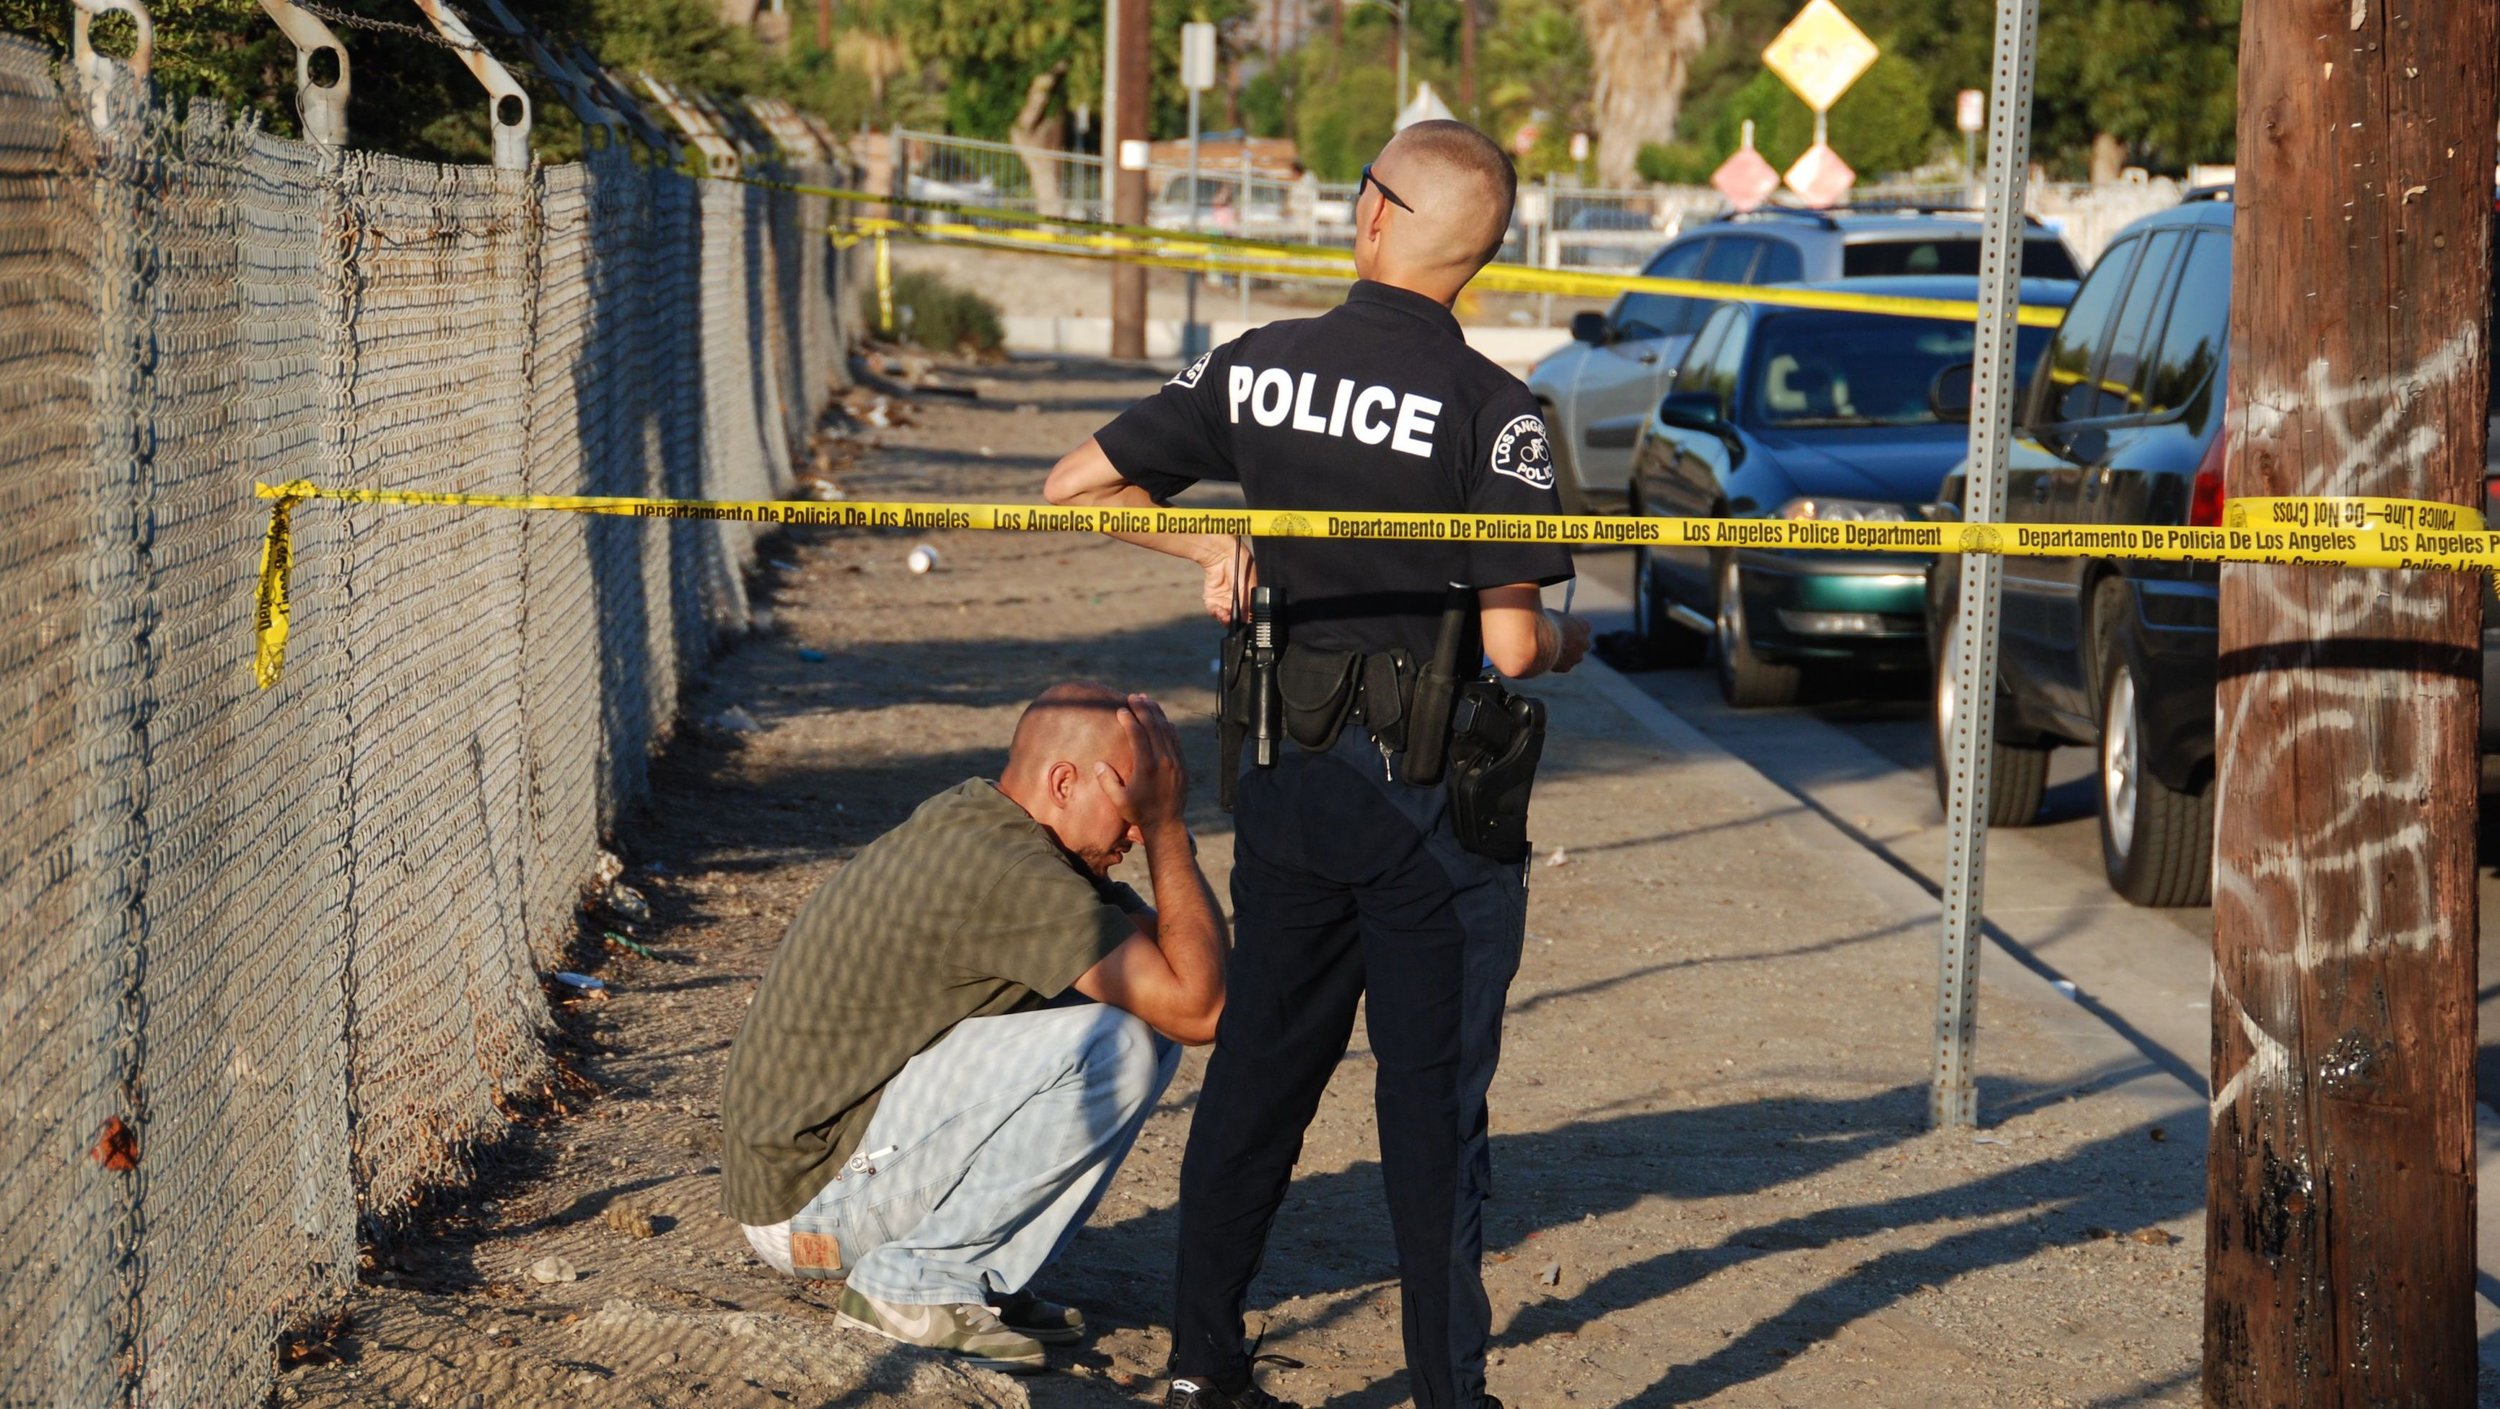 Harvard researchers: US police killings should be officially considered a public health issue